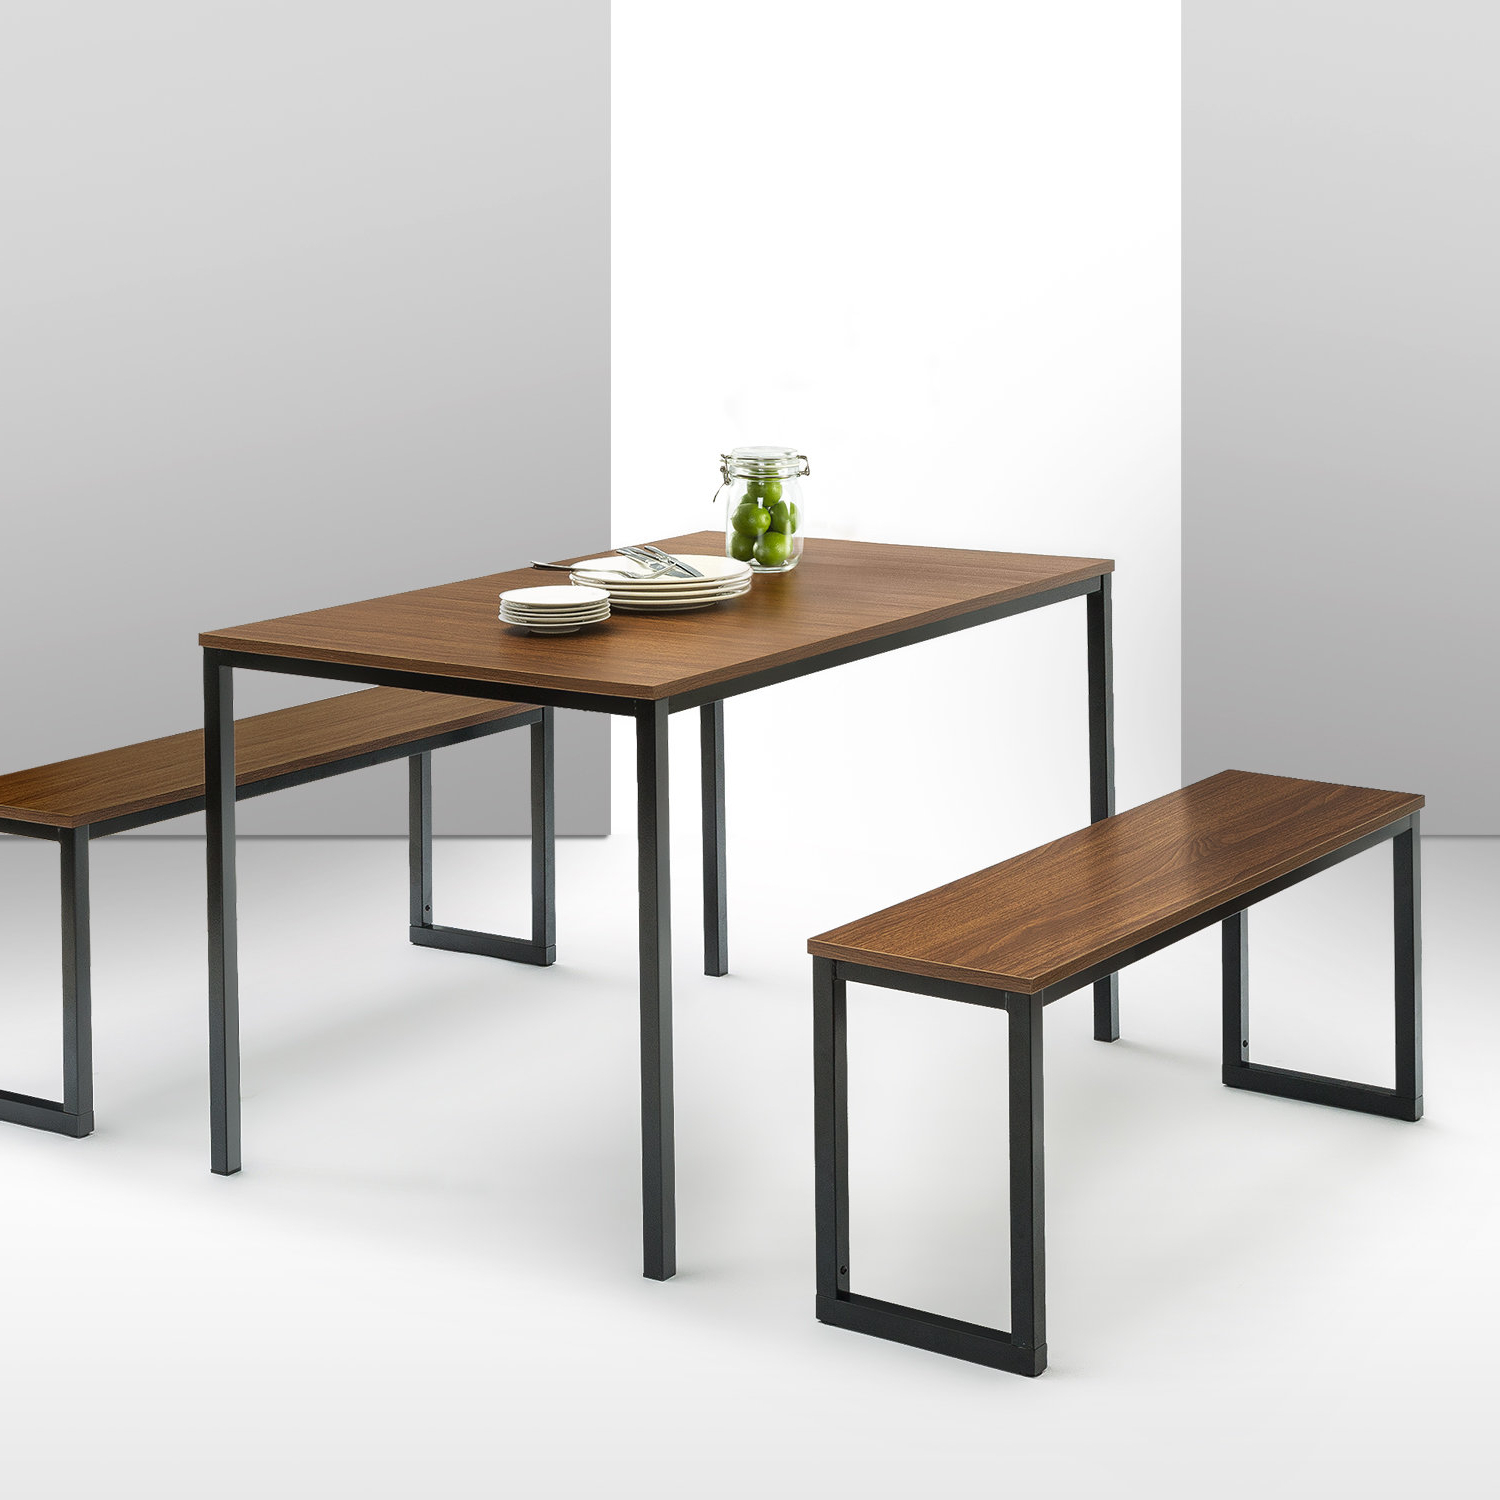 Famous Kerley 4 Piece Dining Sets Inside Frida 3 Piece Dining Table Set & Reviews (View 8 of 25)